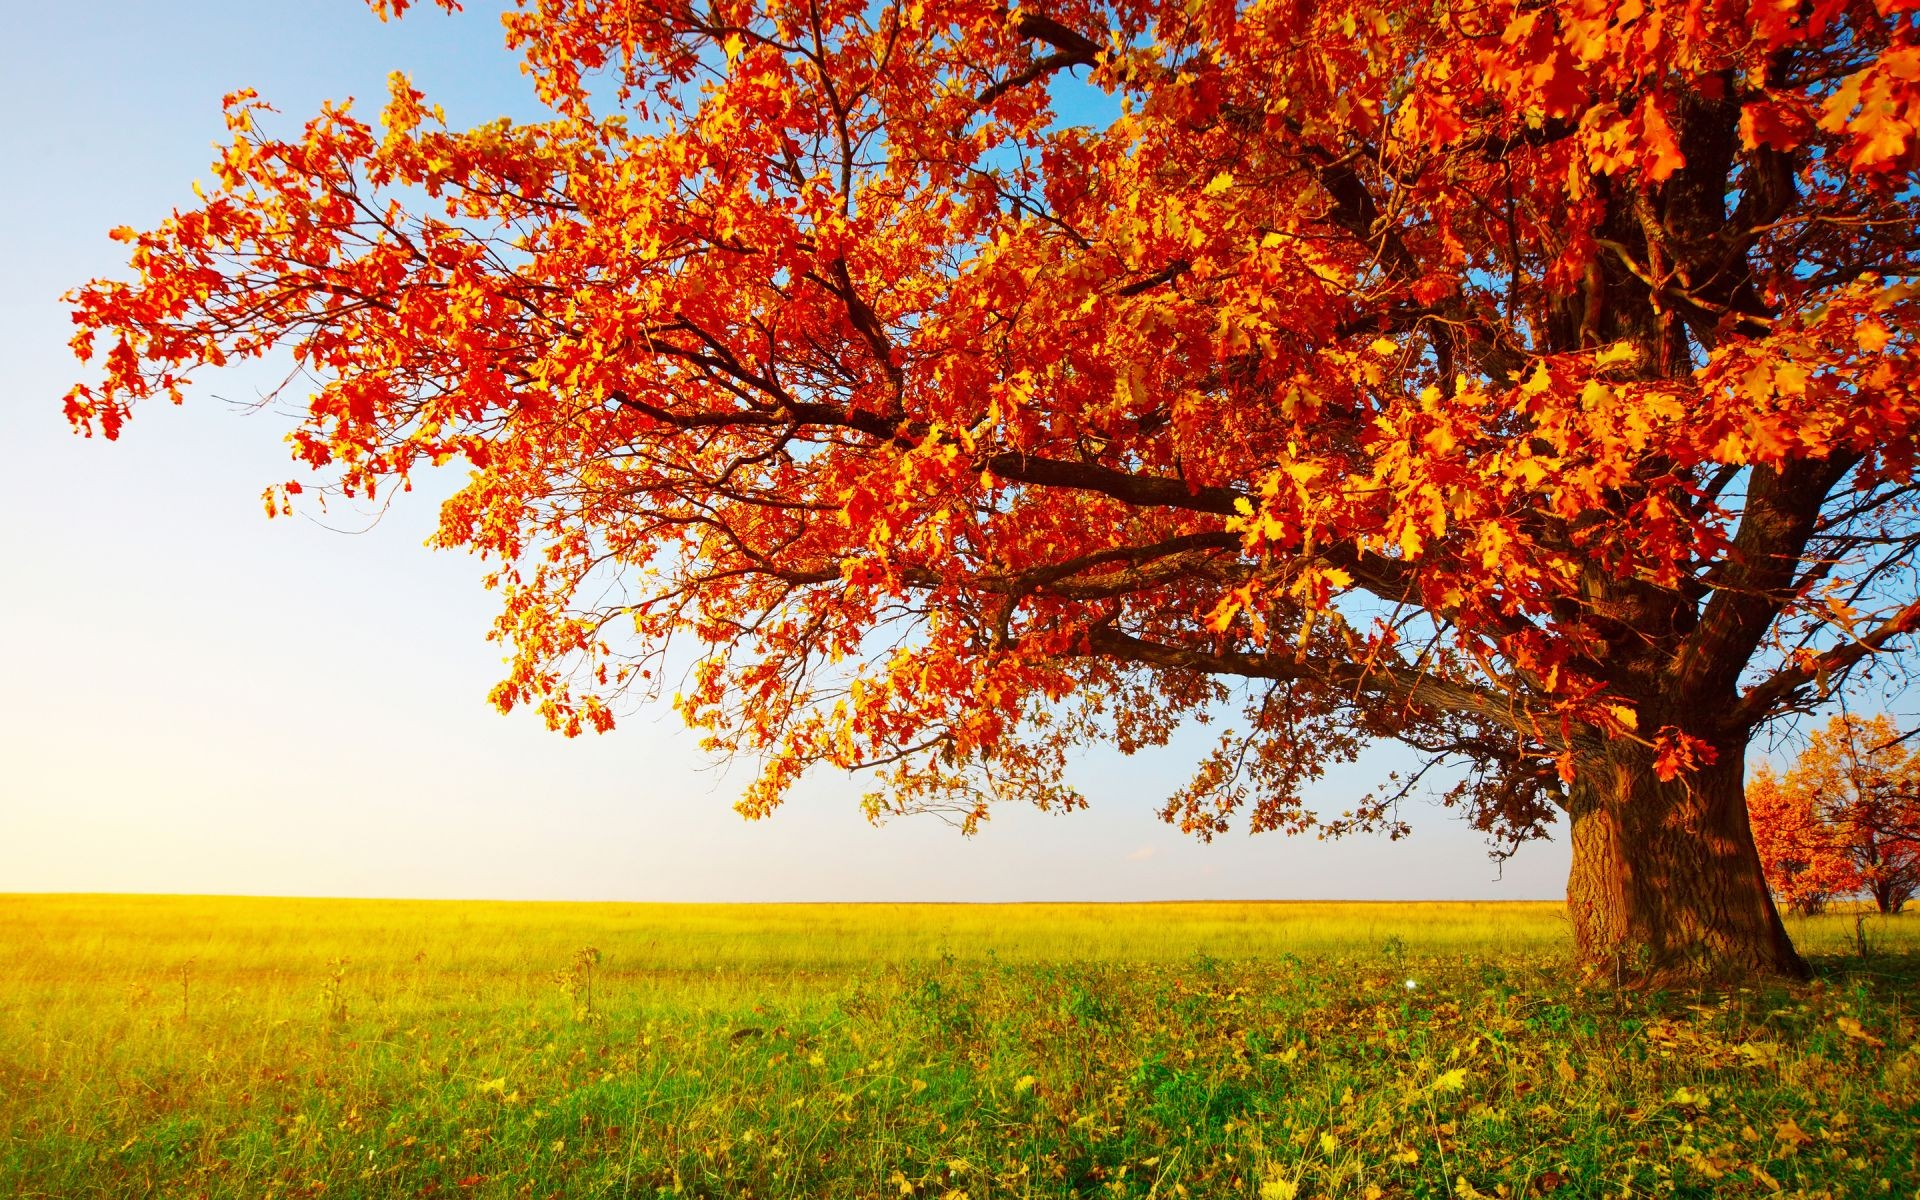 Autumn wallpaper Widescreen Download free amazing High